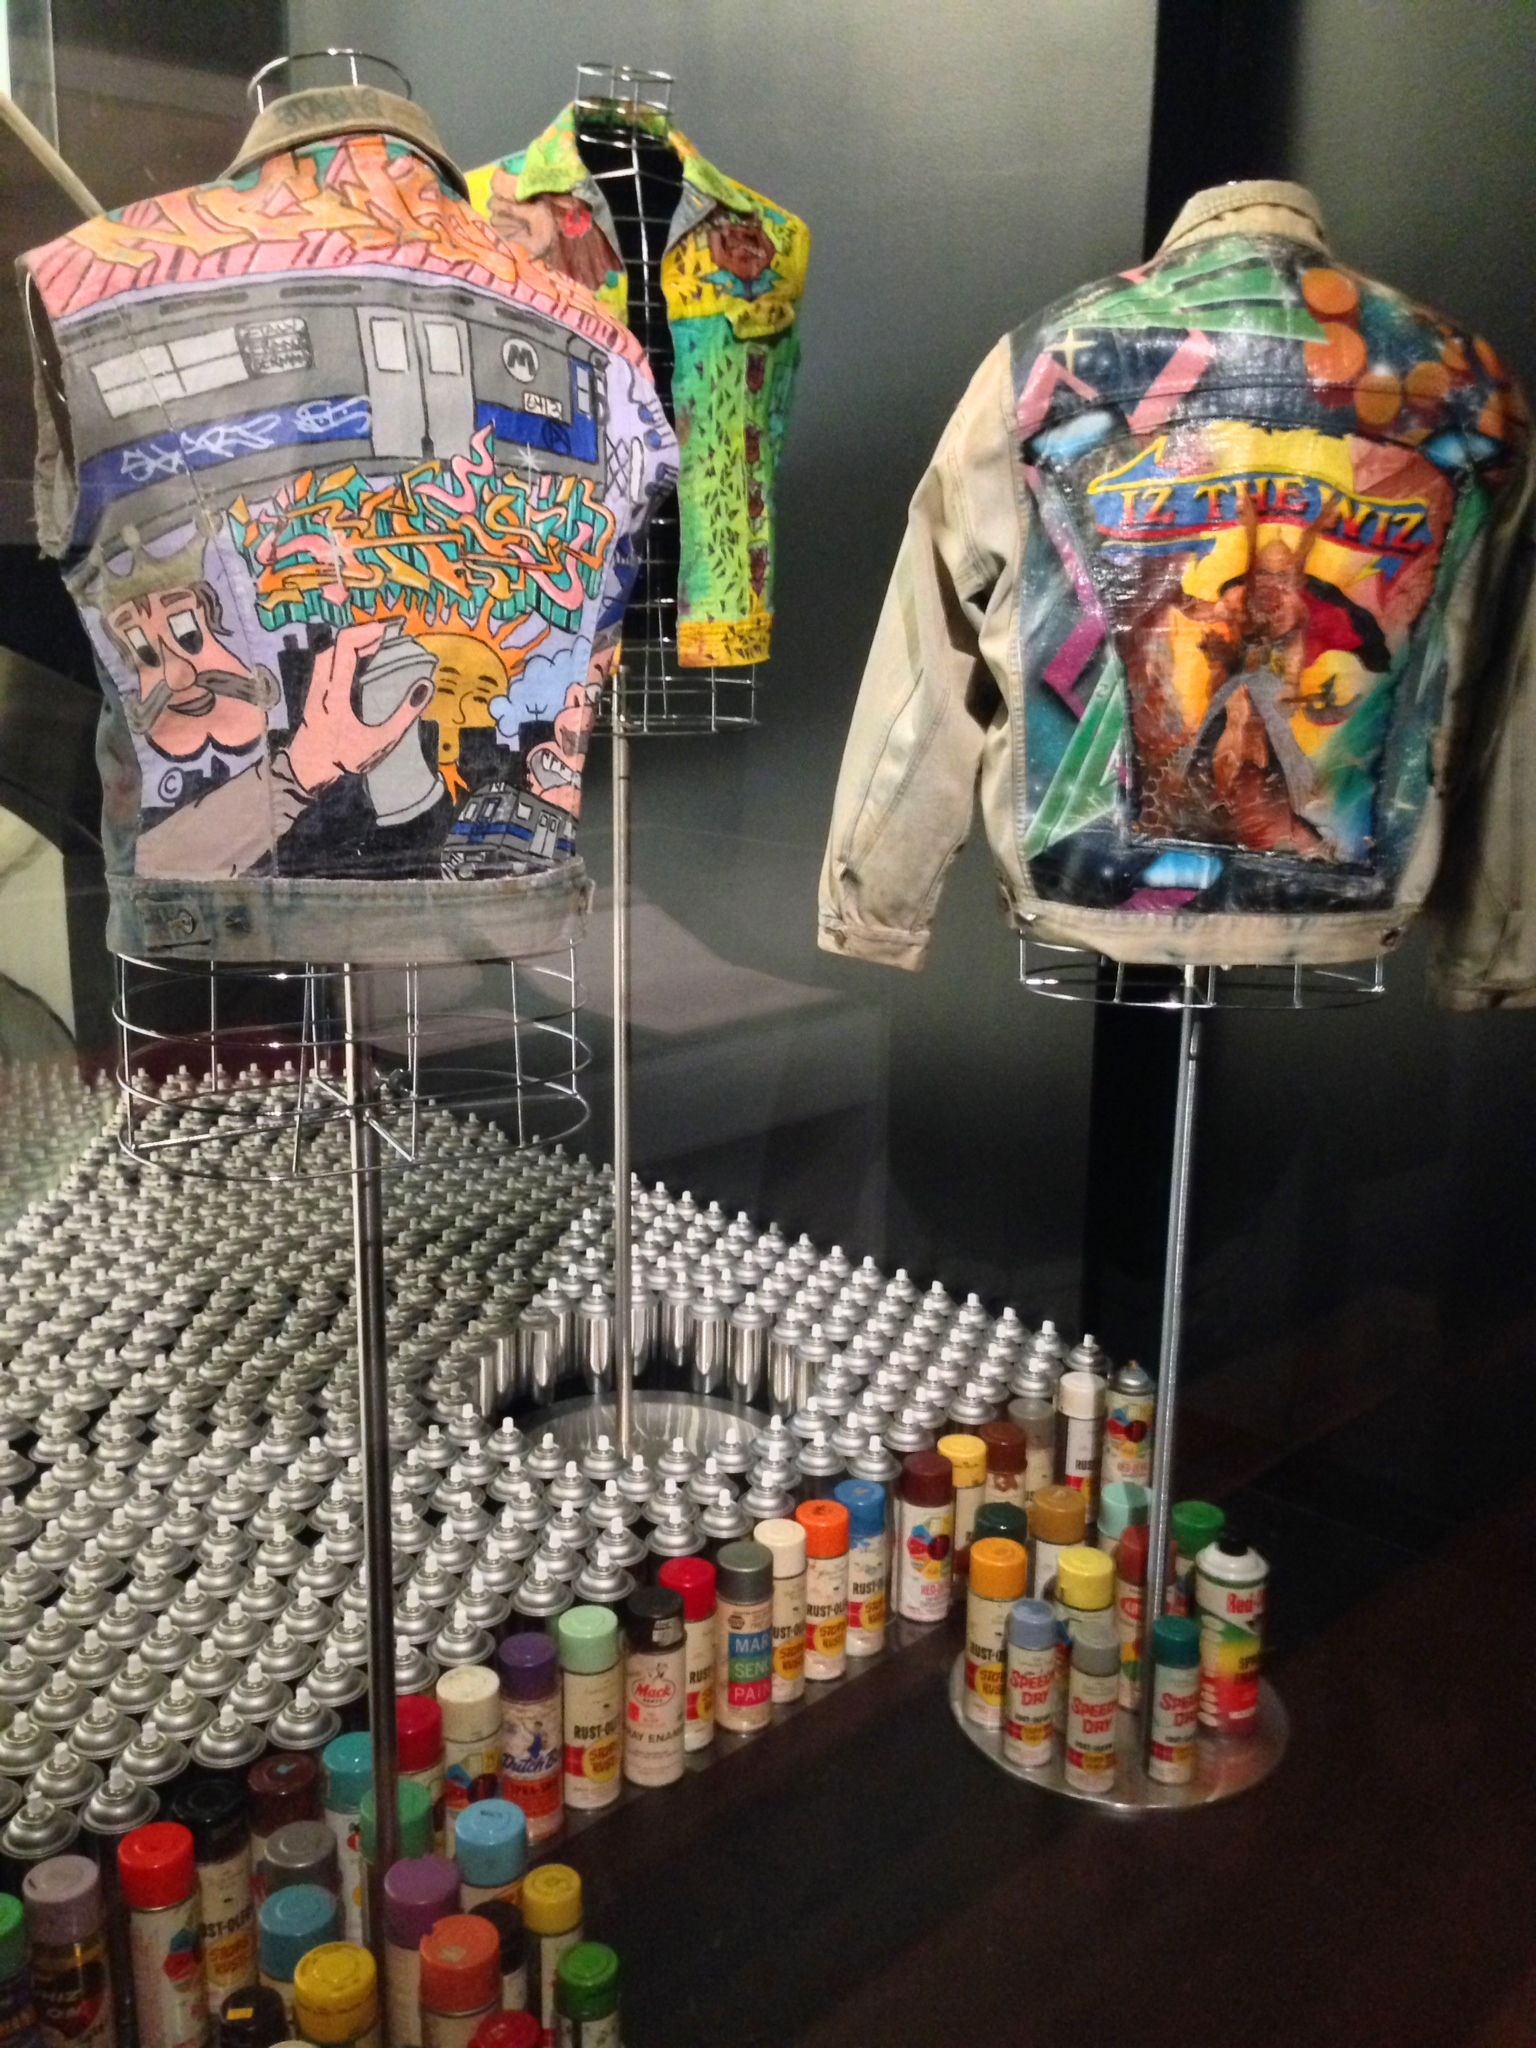 I loved the creativity of this installations with jackets that were created for Wong; the one on the left was designed by SHARP, the one in the middle by Delta 2 and the one in the right by Caine One.